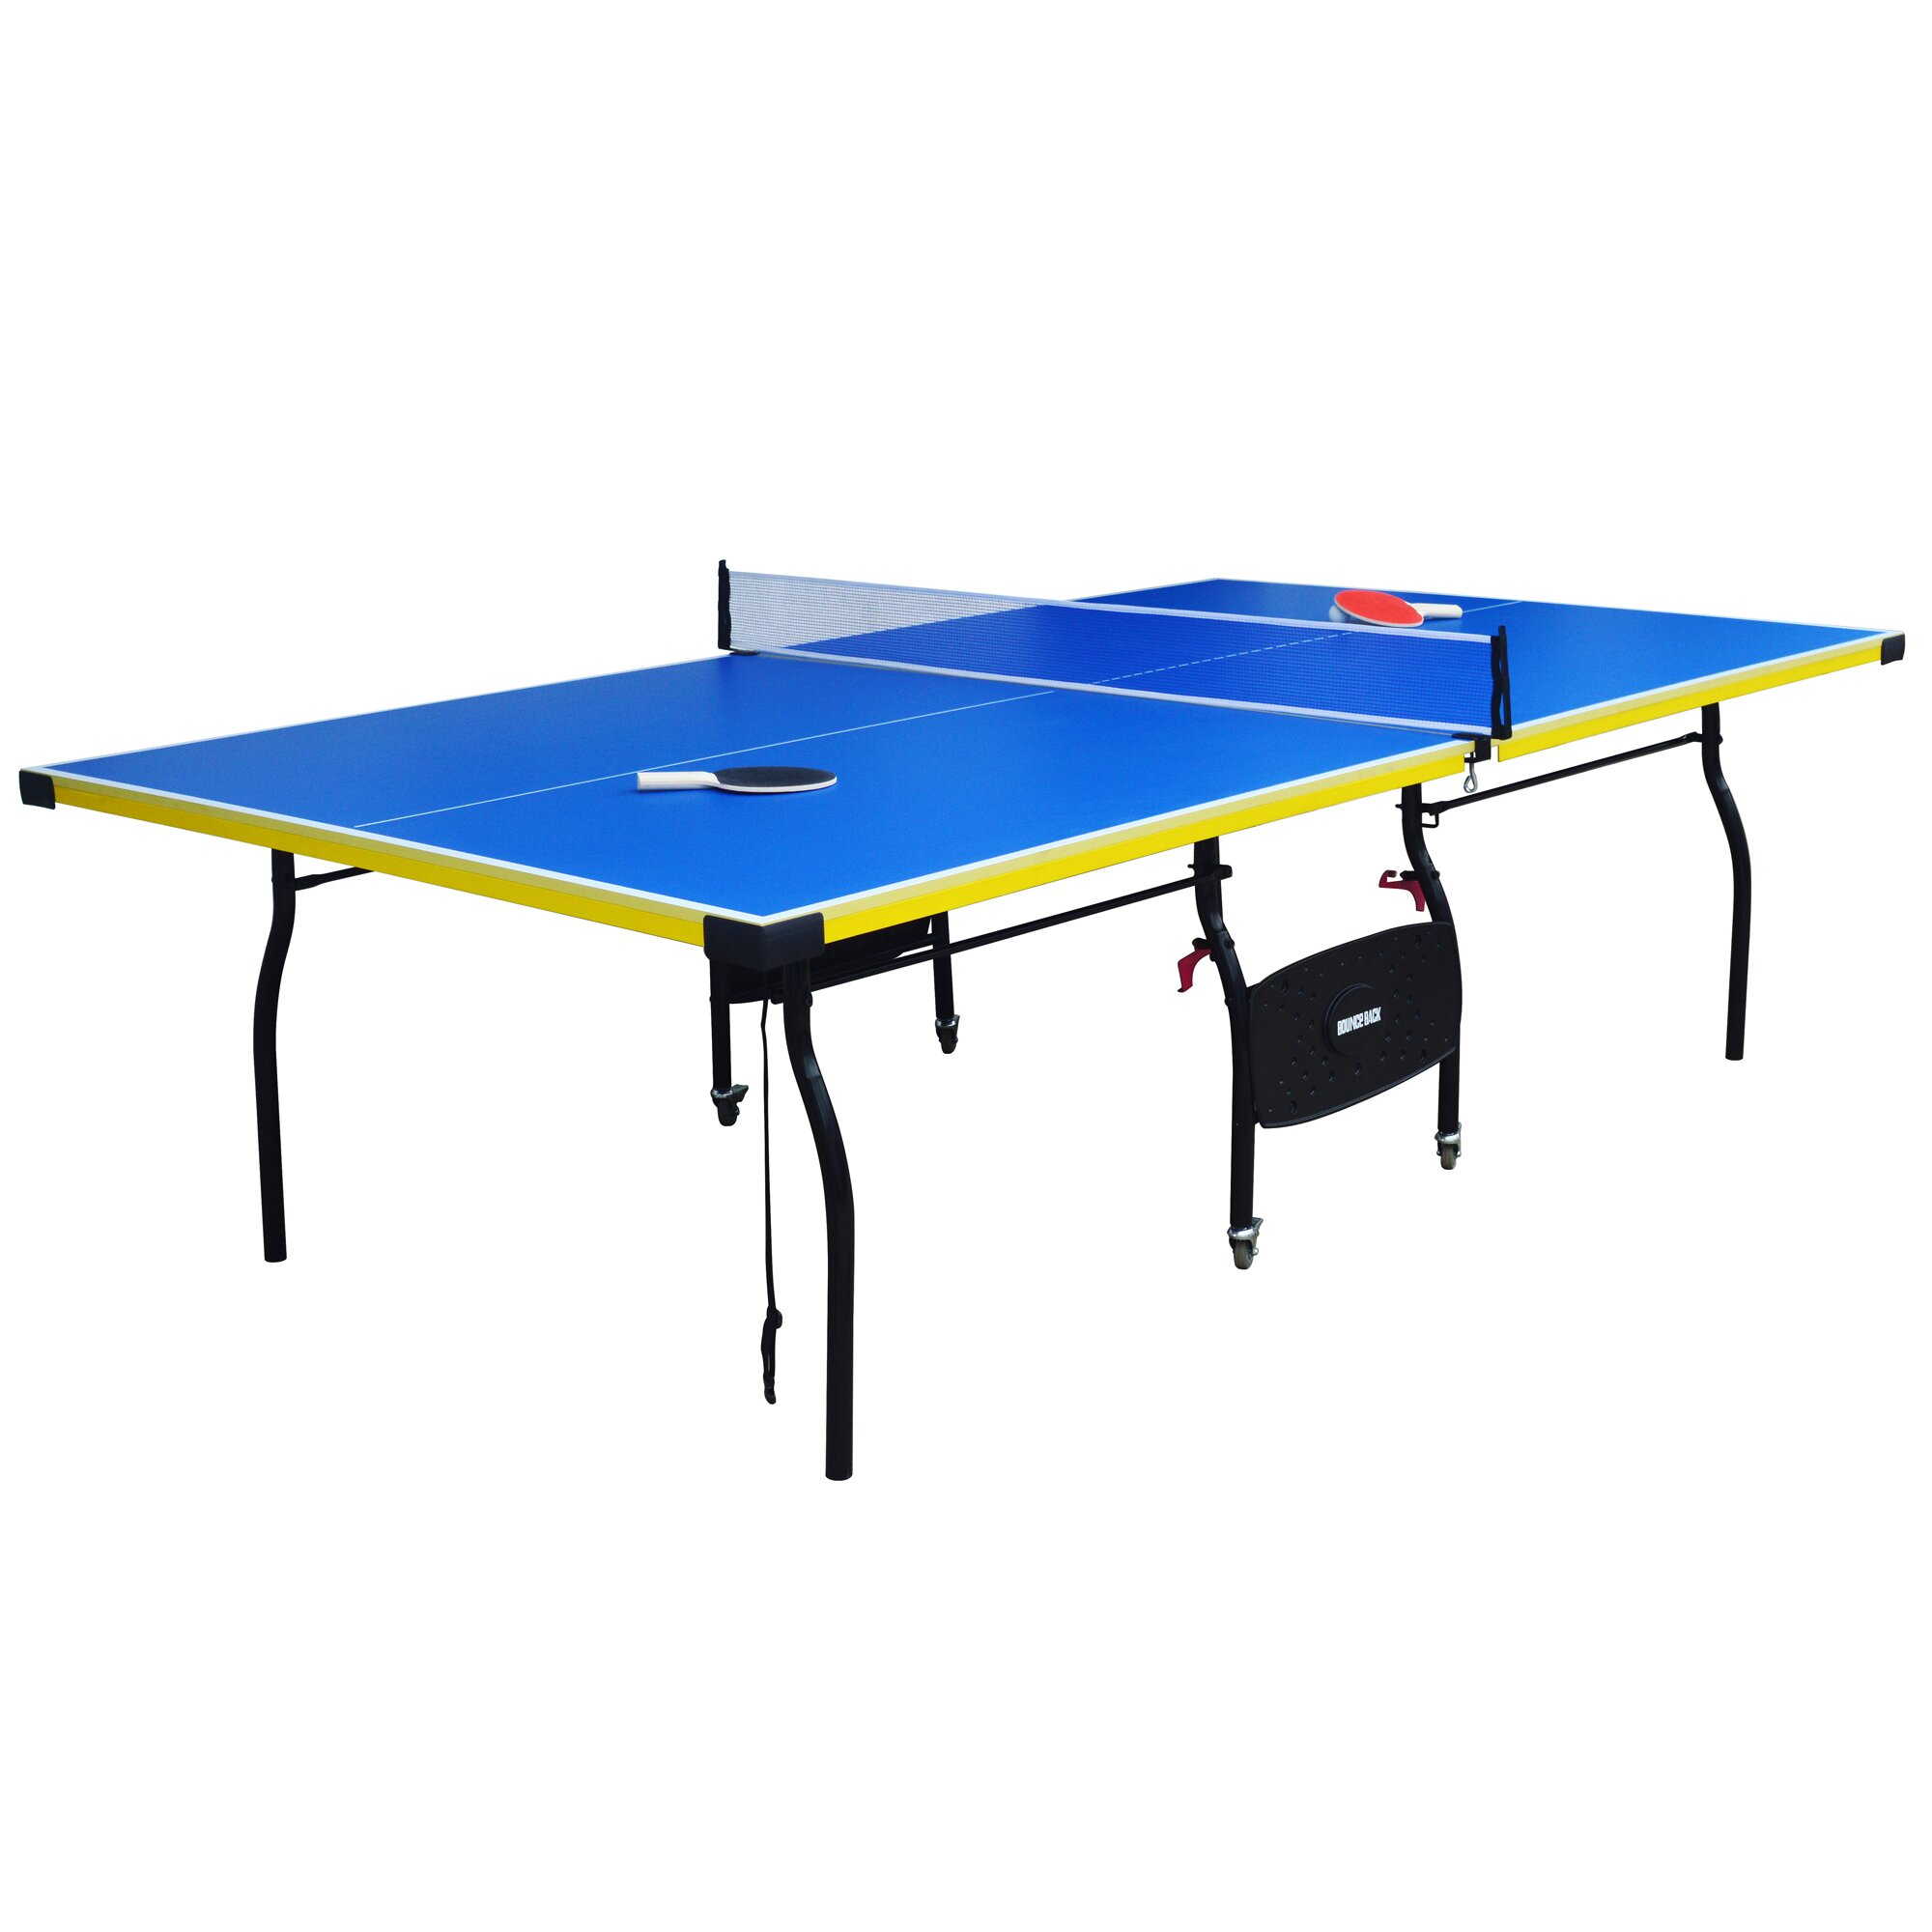 Foldaway Dining Table : Hathaway Games Bounce Table Tennis Table BG2325 from www.tehroony.com size 2000 x 2000 jpeg 238kB